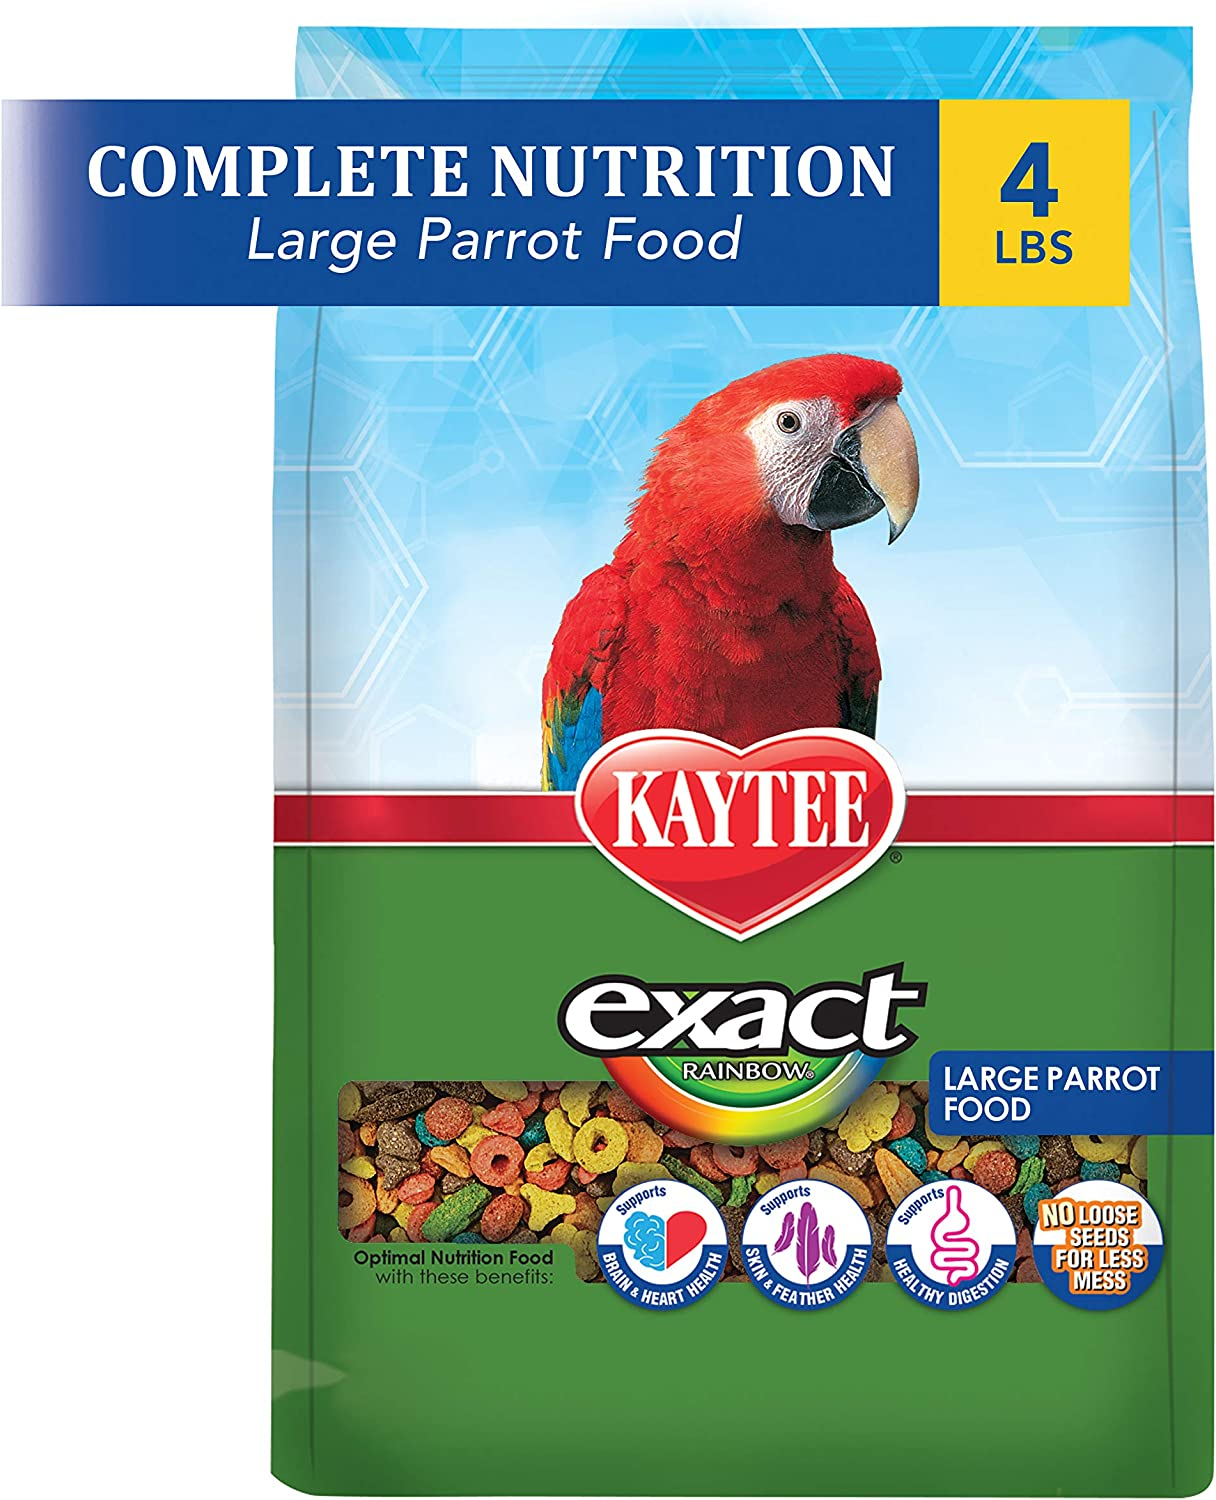 Kaytee Exact Rainbow Chunky Premium Daily Nutrition for Large Parrots